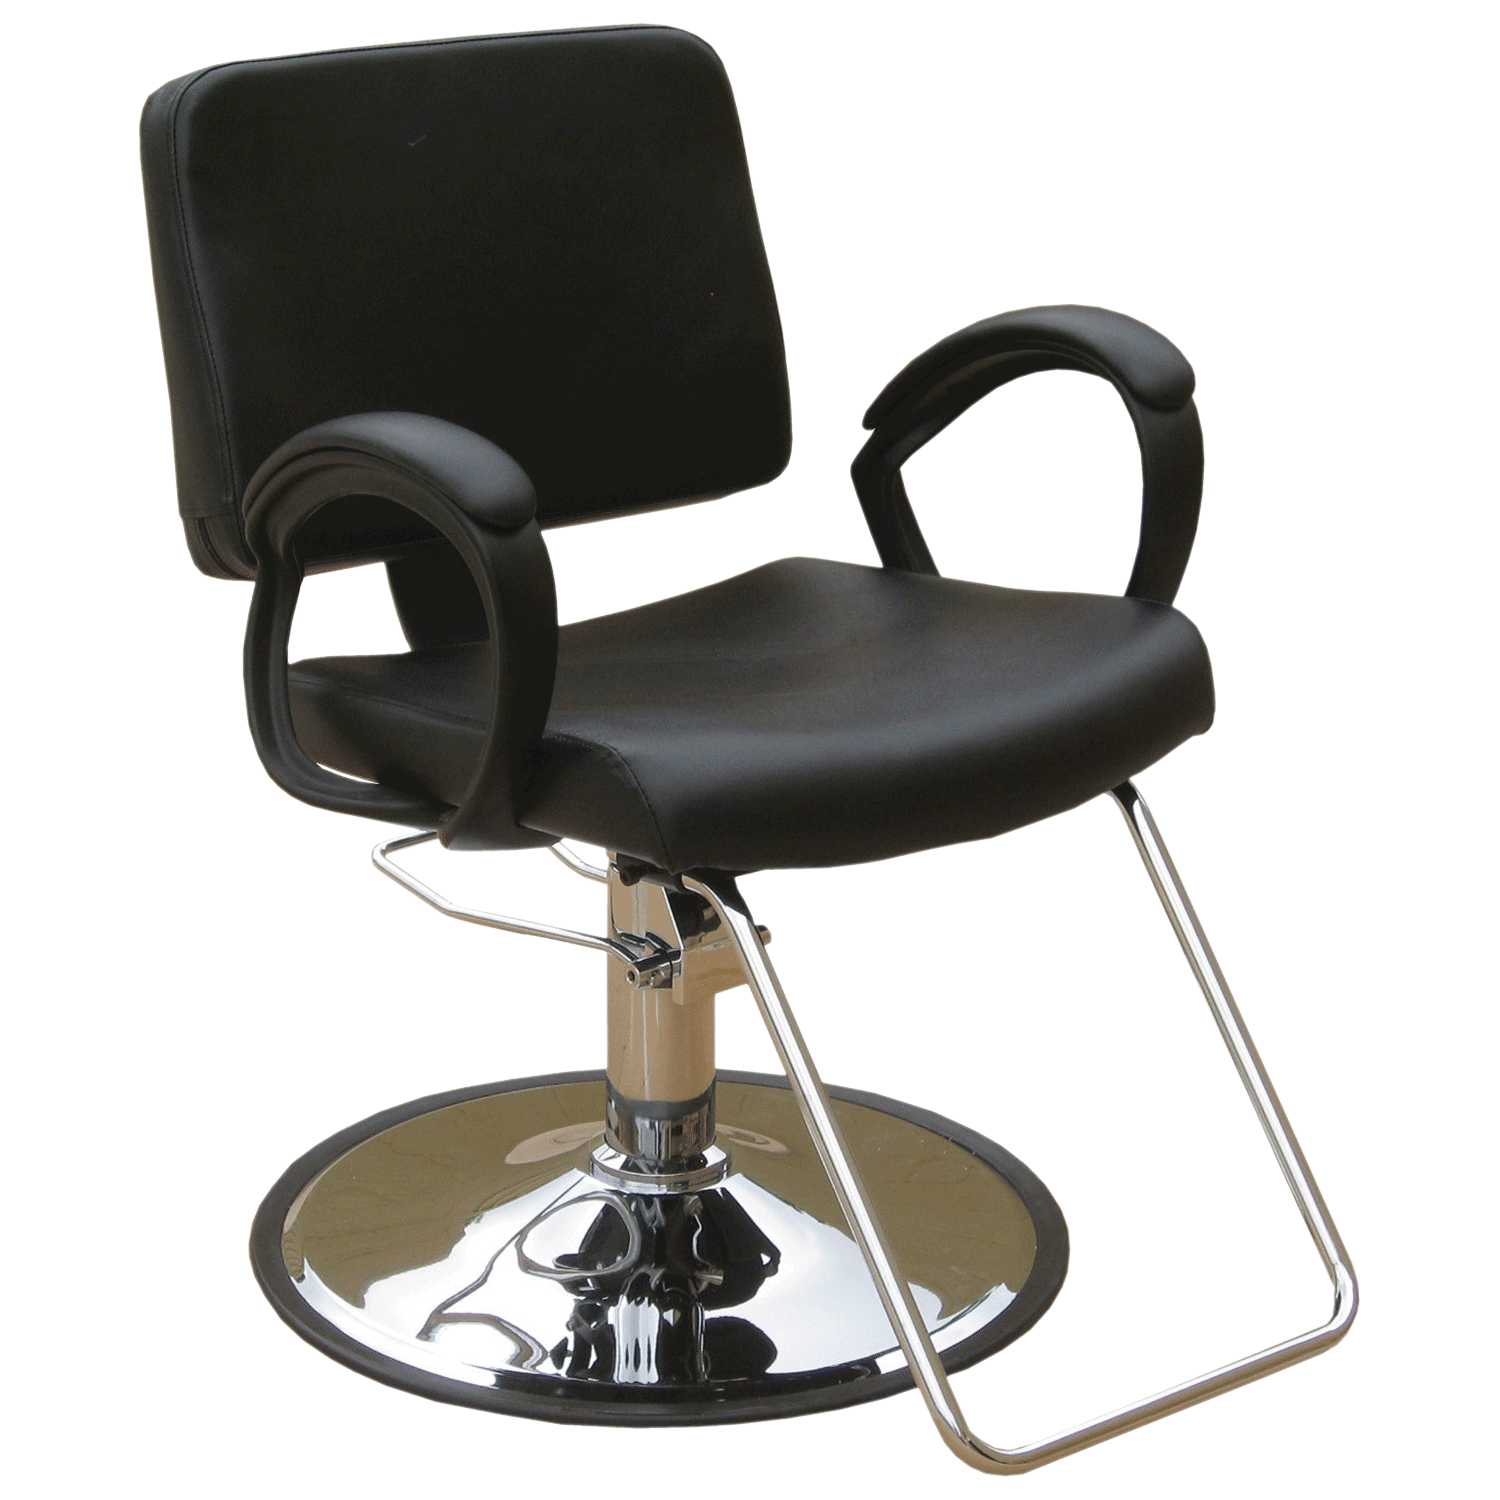 Salon Dryer Chair Puresana Ava Styling Chair With Base Salon Chairs Dryer